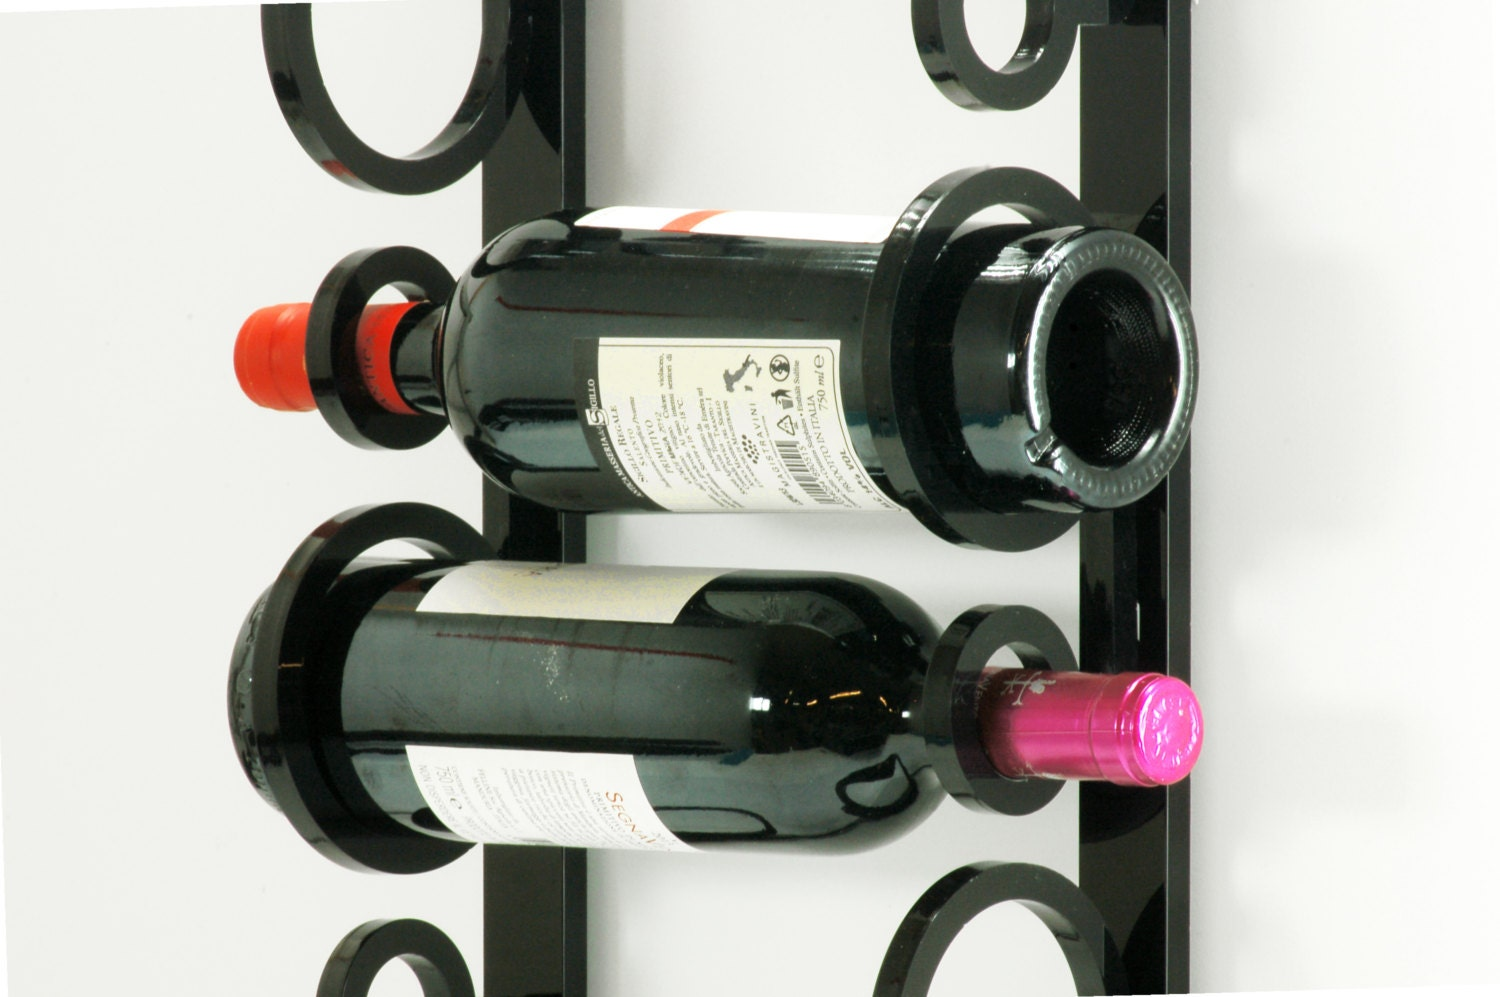 Wall mounted wine rack acrylic wine rack sob by sobweb - Portabottiglie vino ikea ...